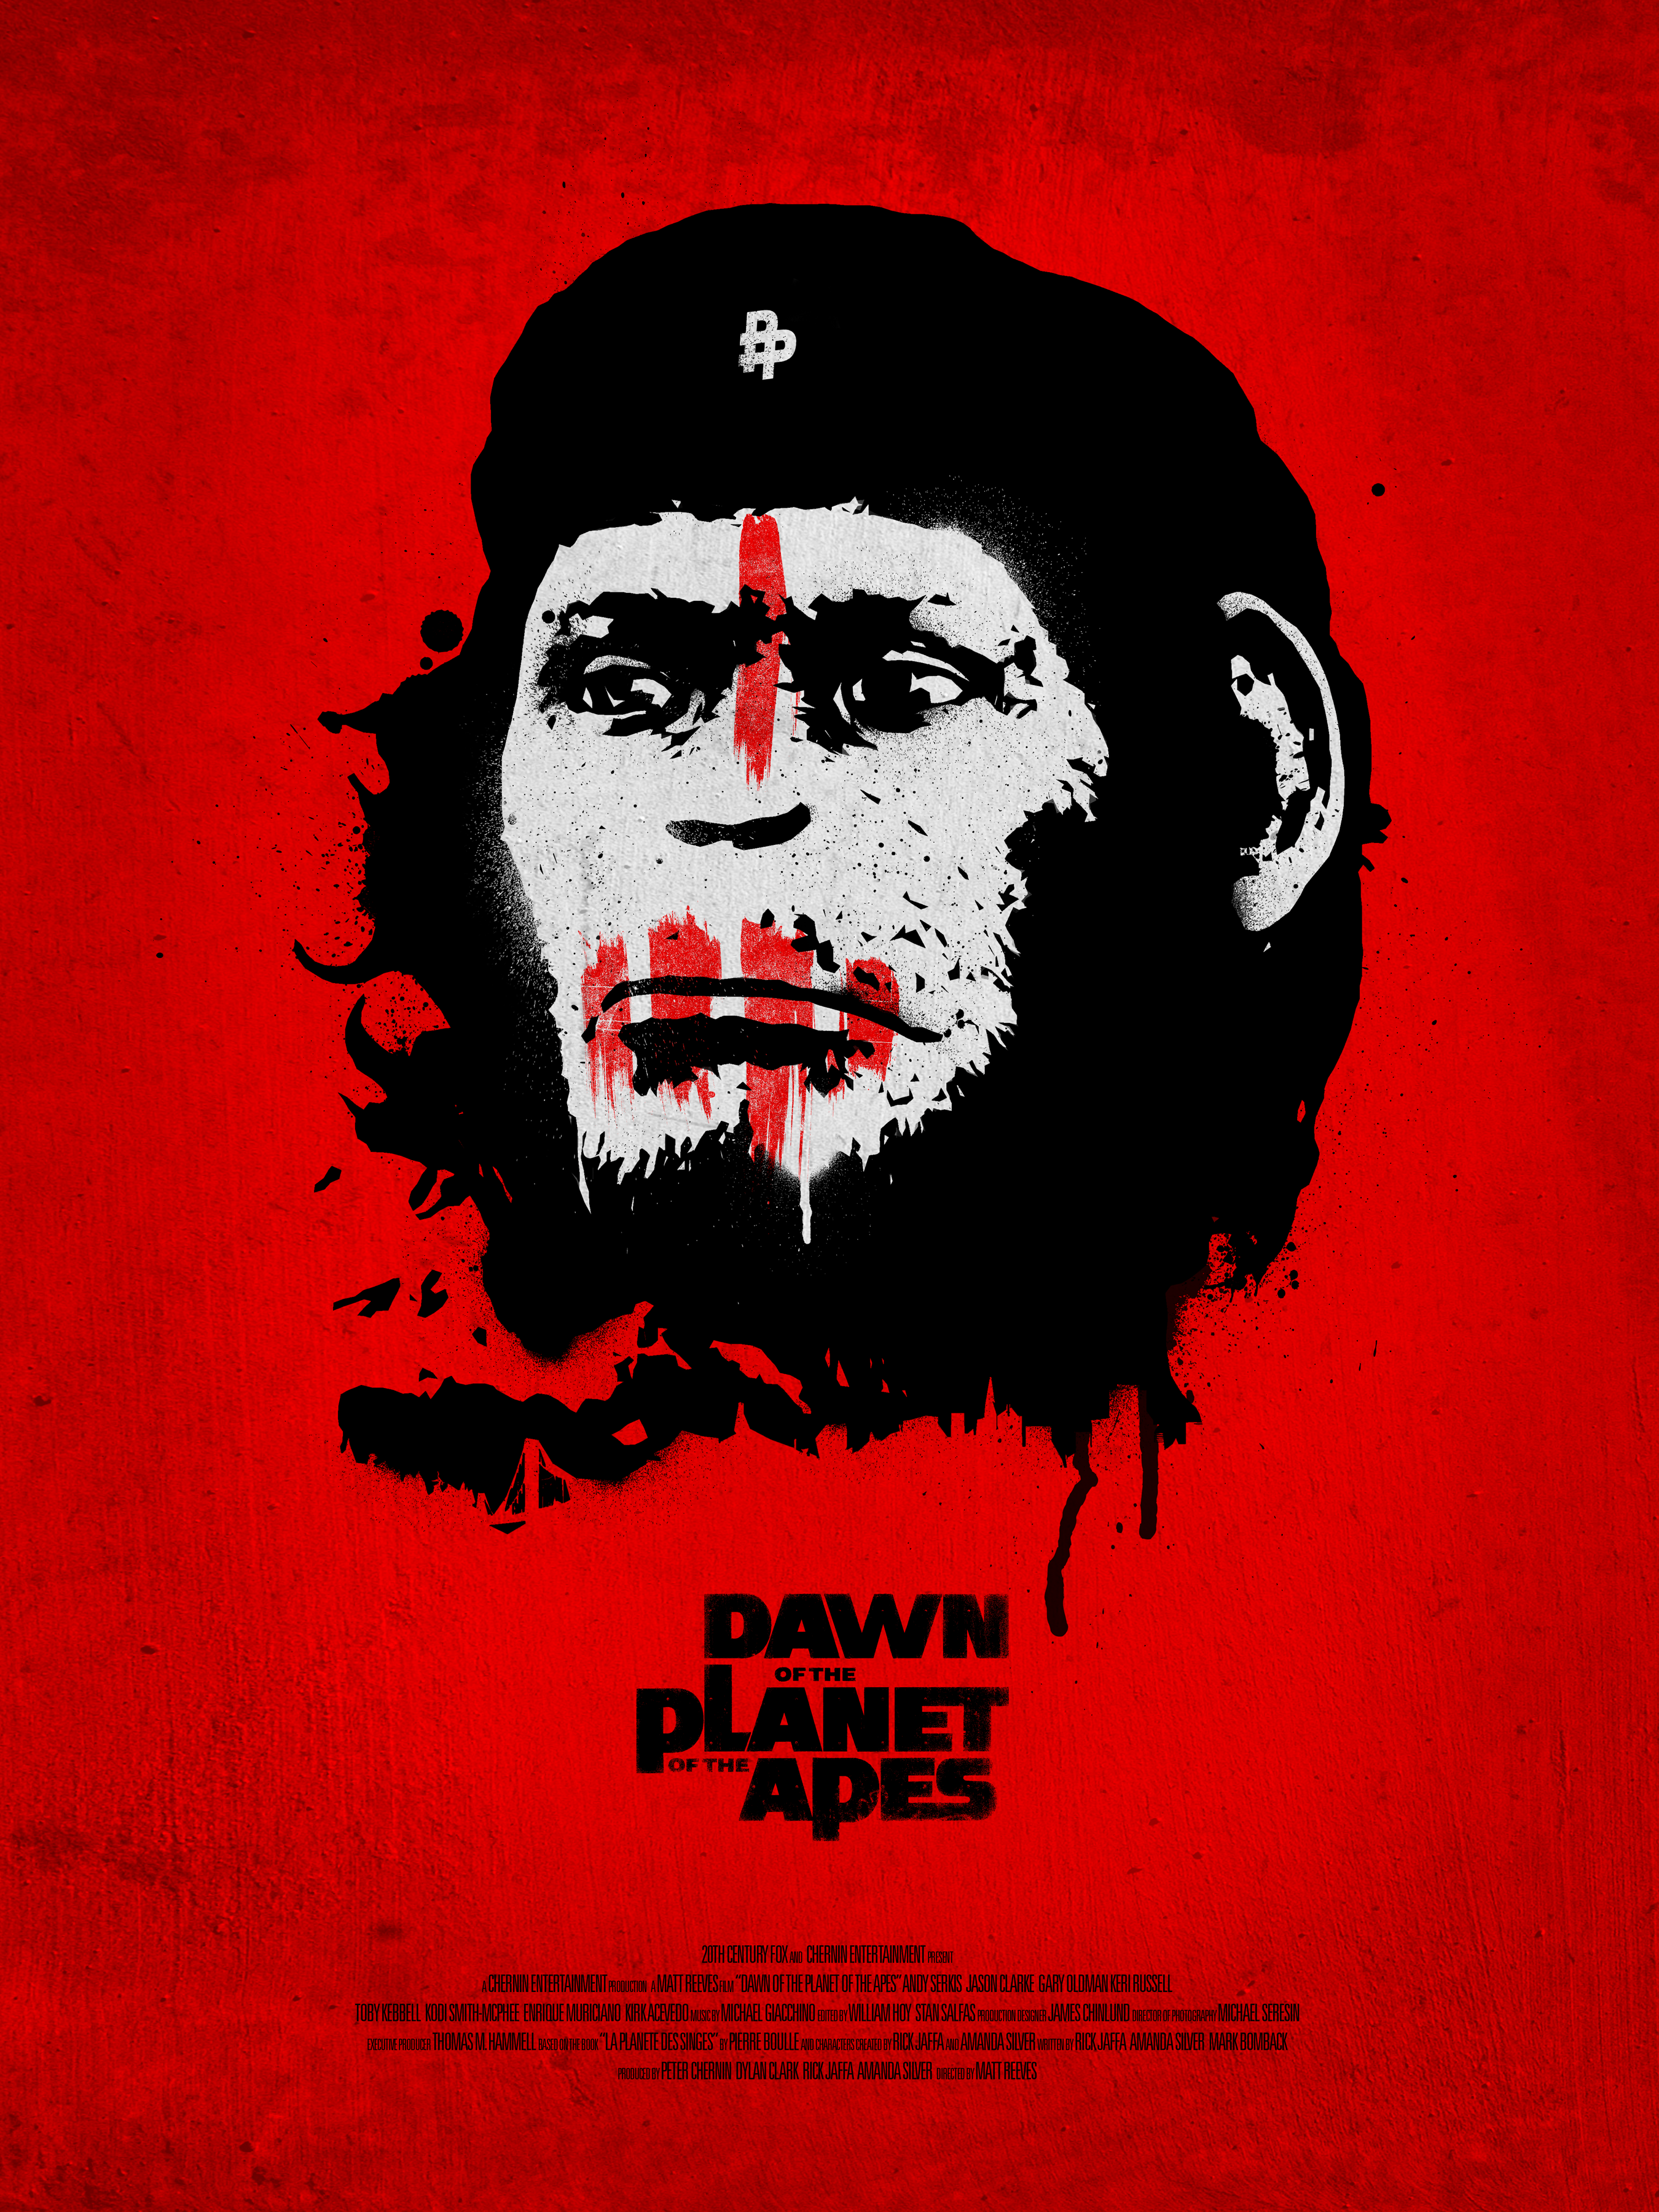 Dawn of the planets of the apes by Andrew Swainson